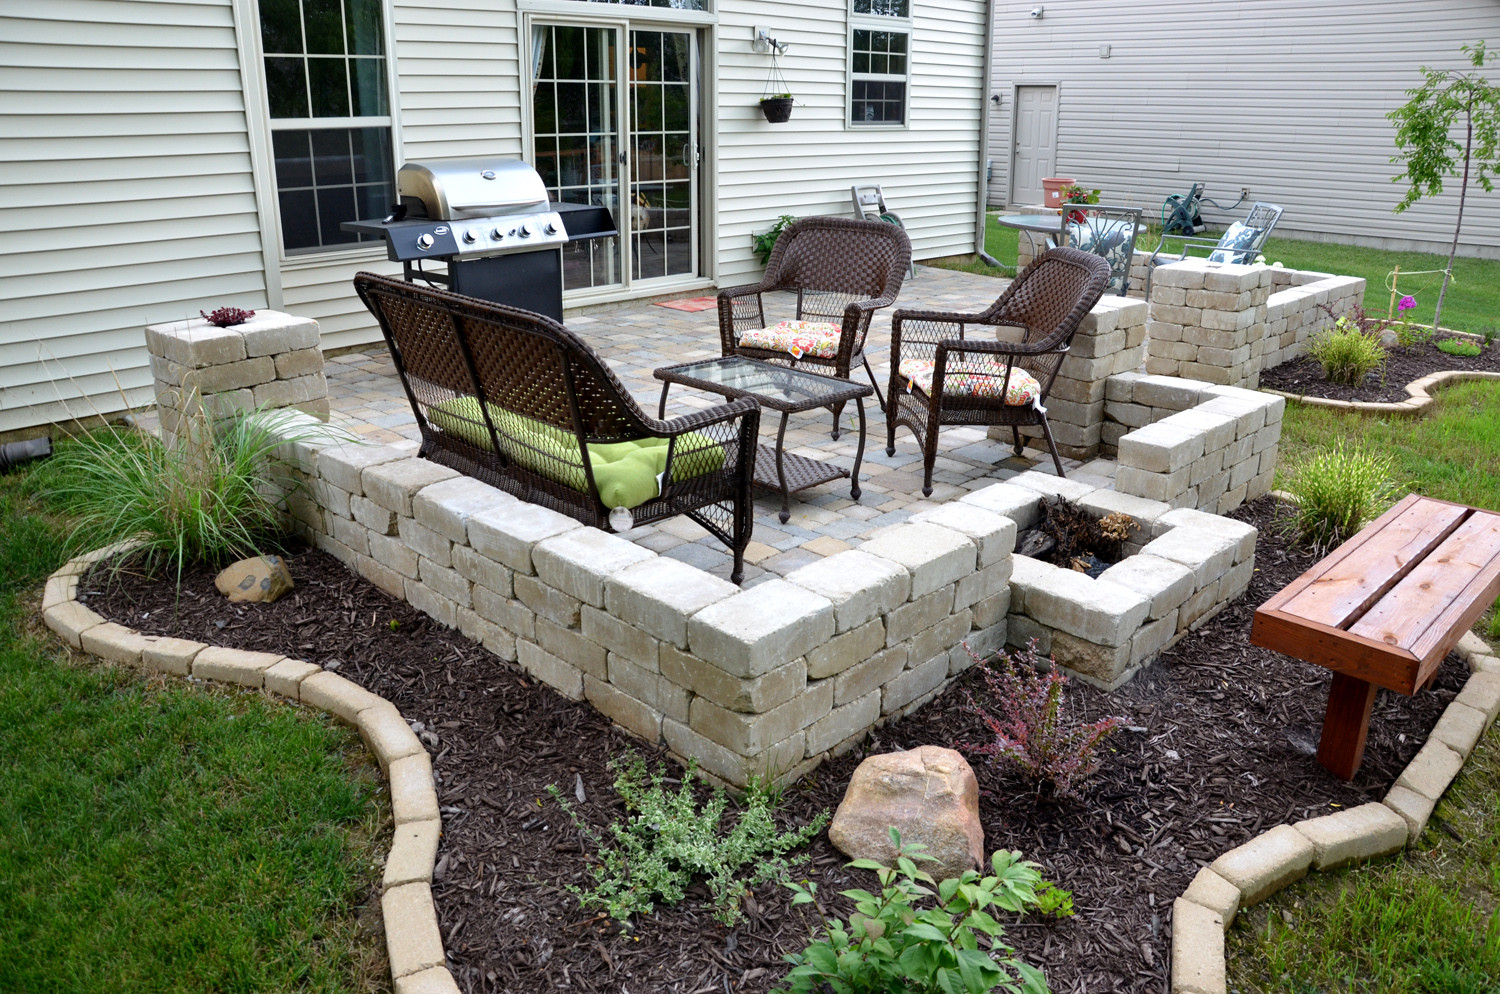 Best ideas about Diy Backyard Patio . Save or Pin DIY backyard paver patio outdoor oasis tutorial Now.